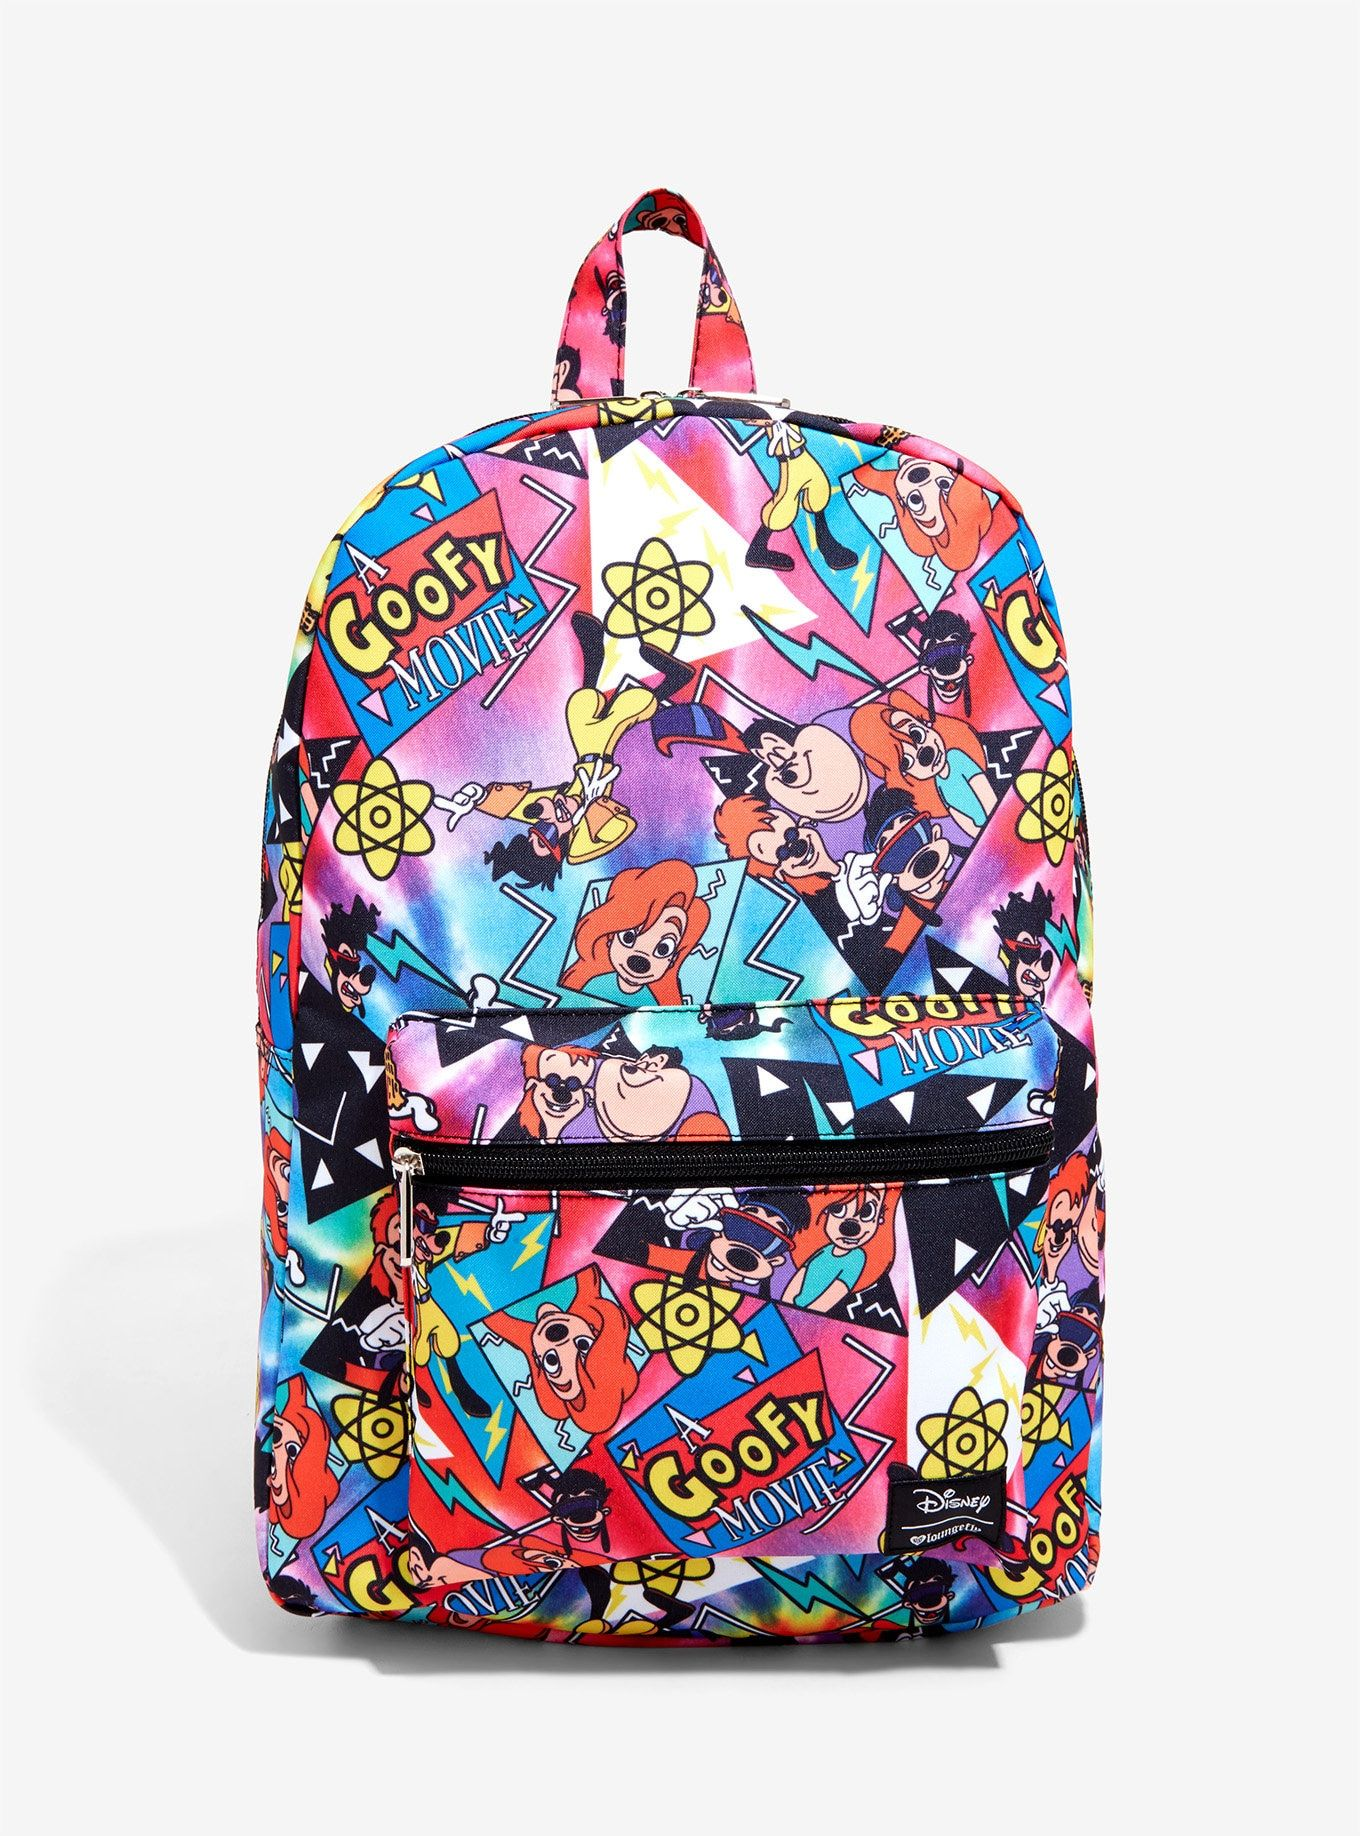 811e8952d3a goofy movie Star Wars Backpack